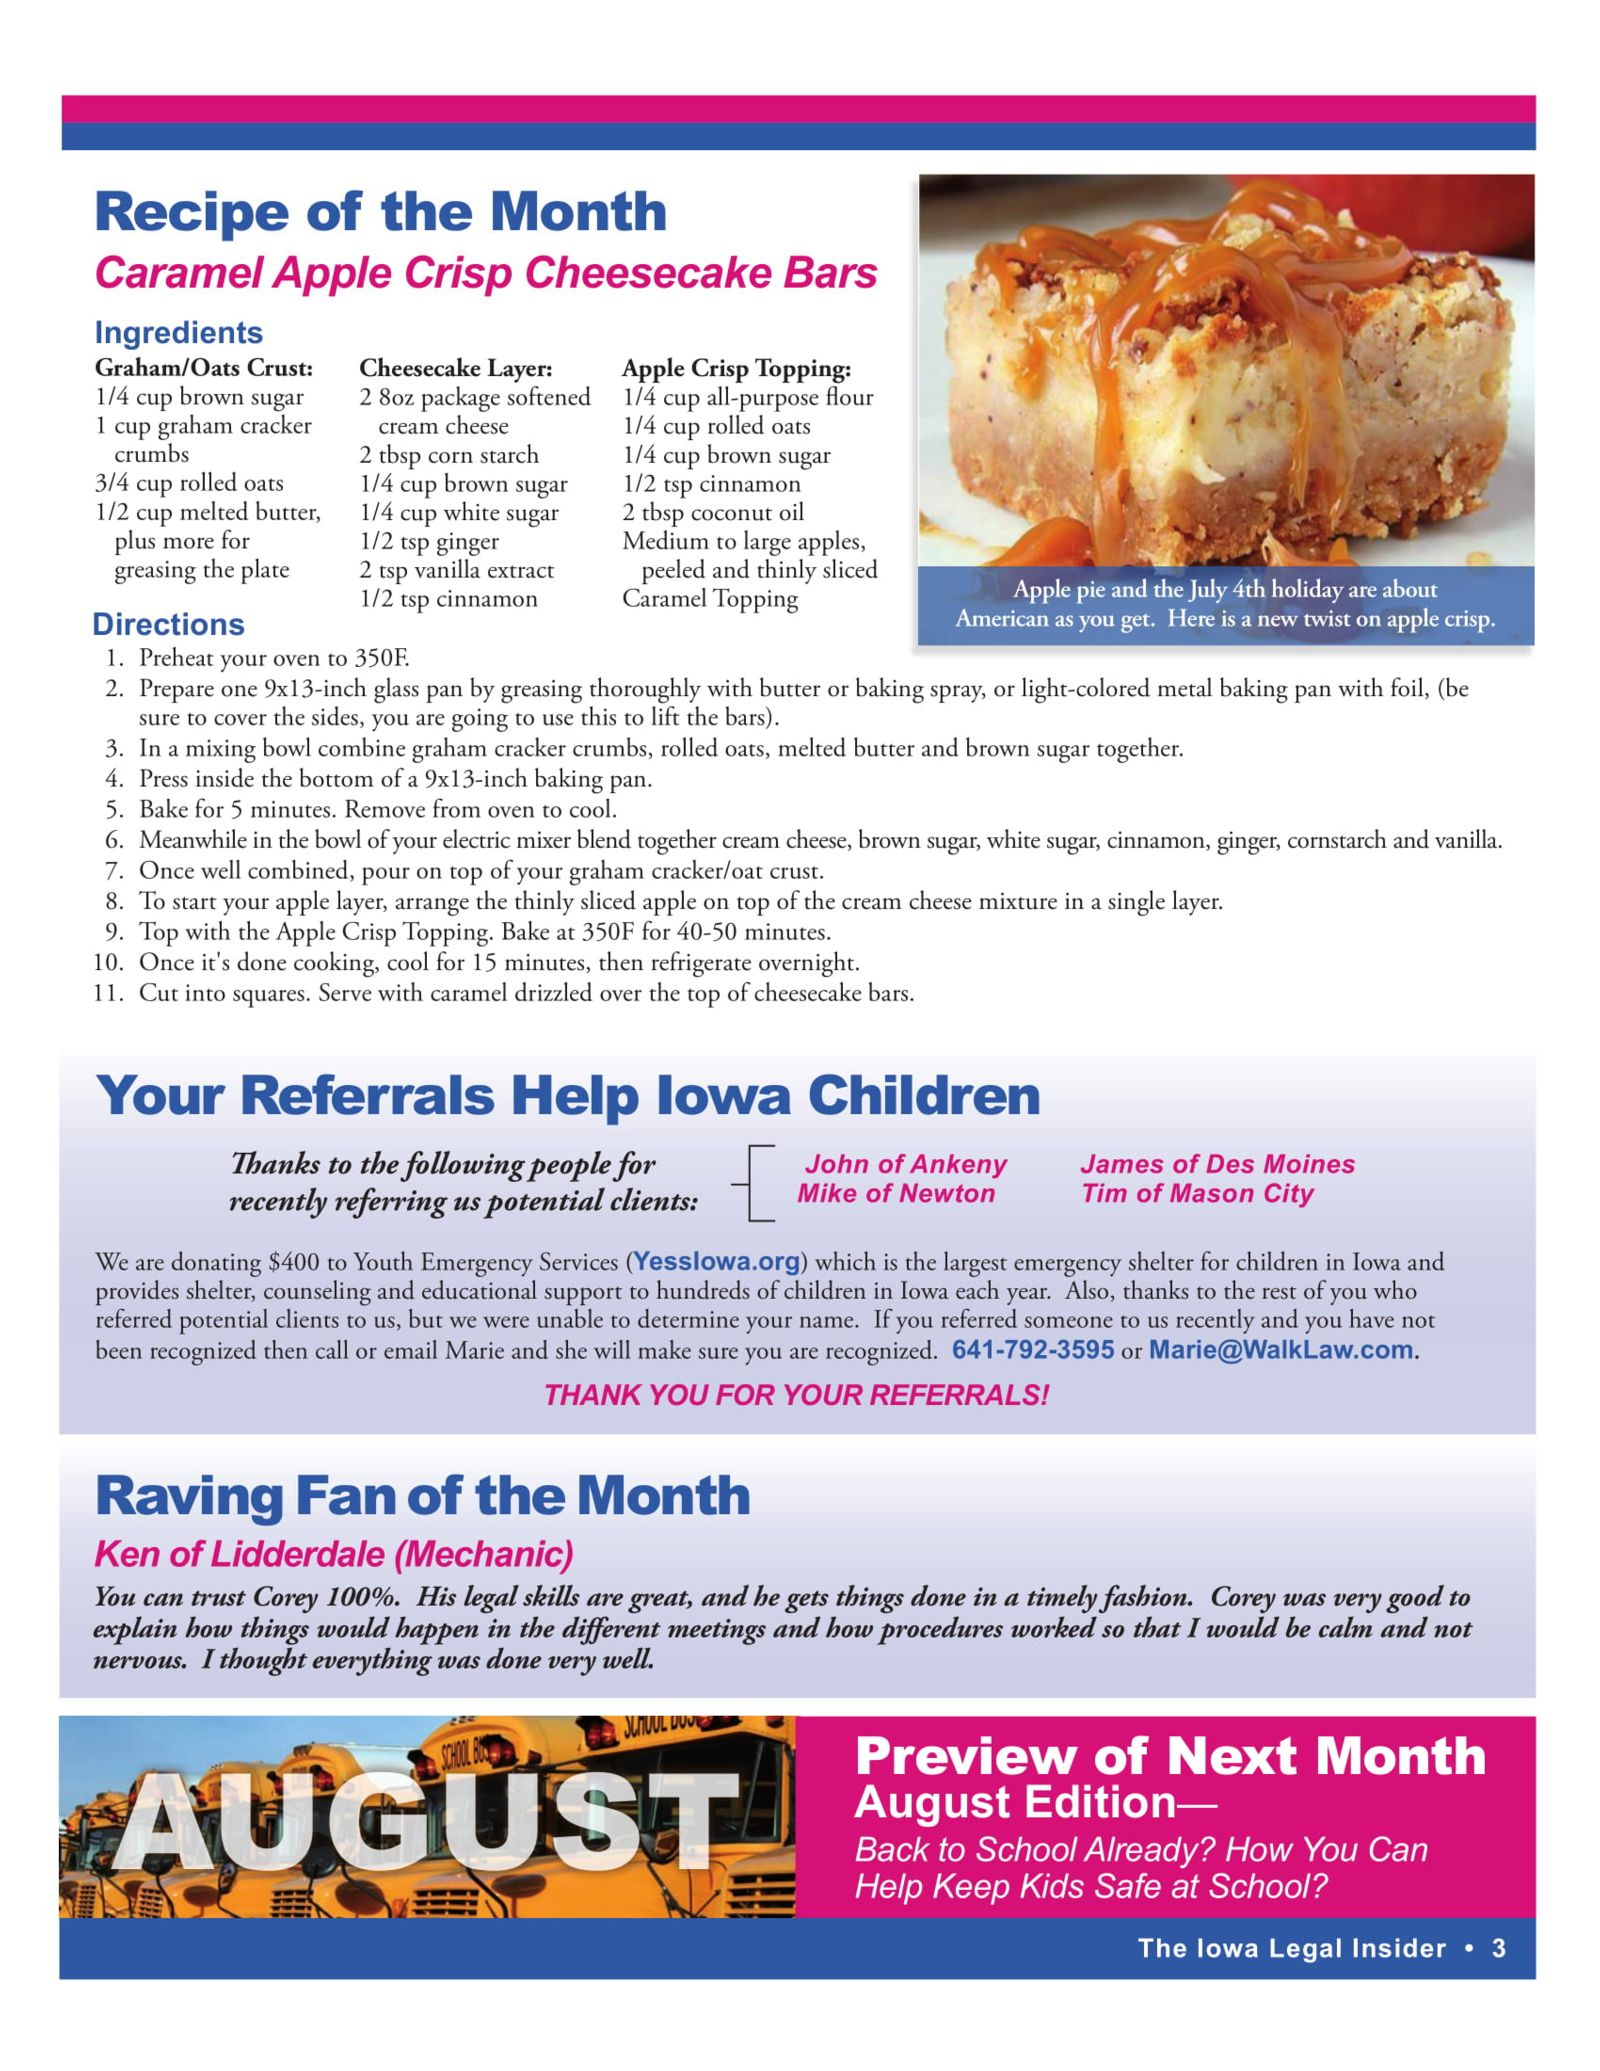 caramel apple crisp cheesecake bars recipe